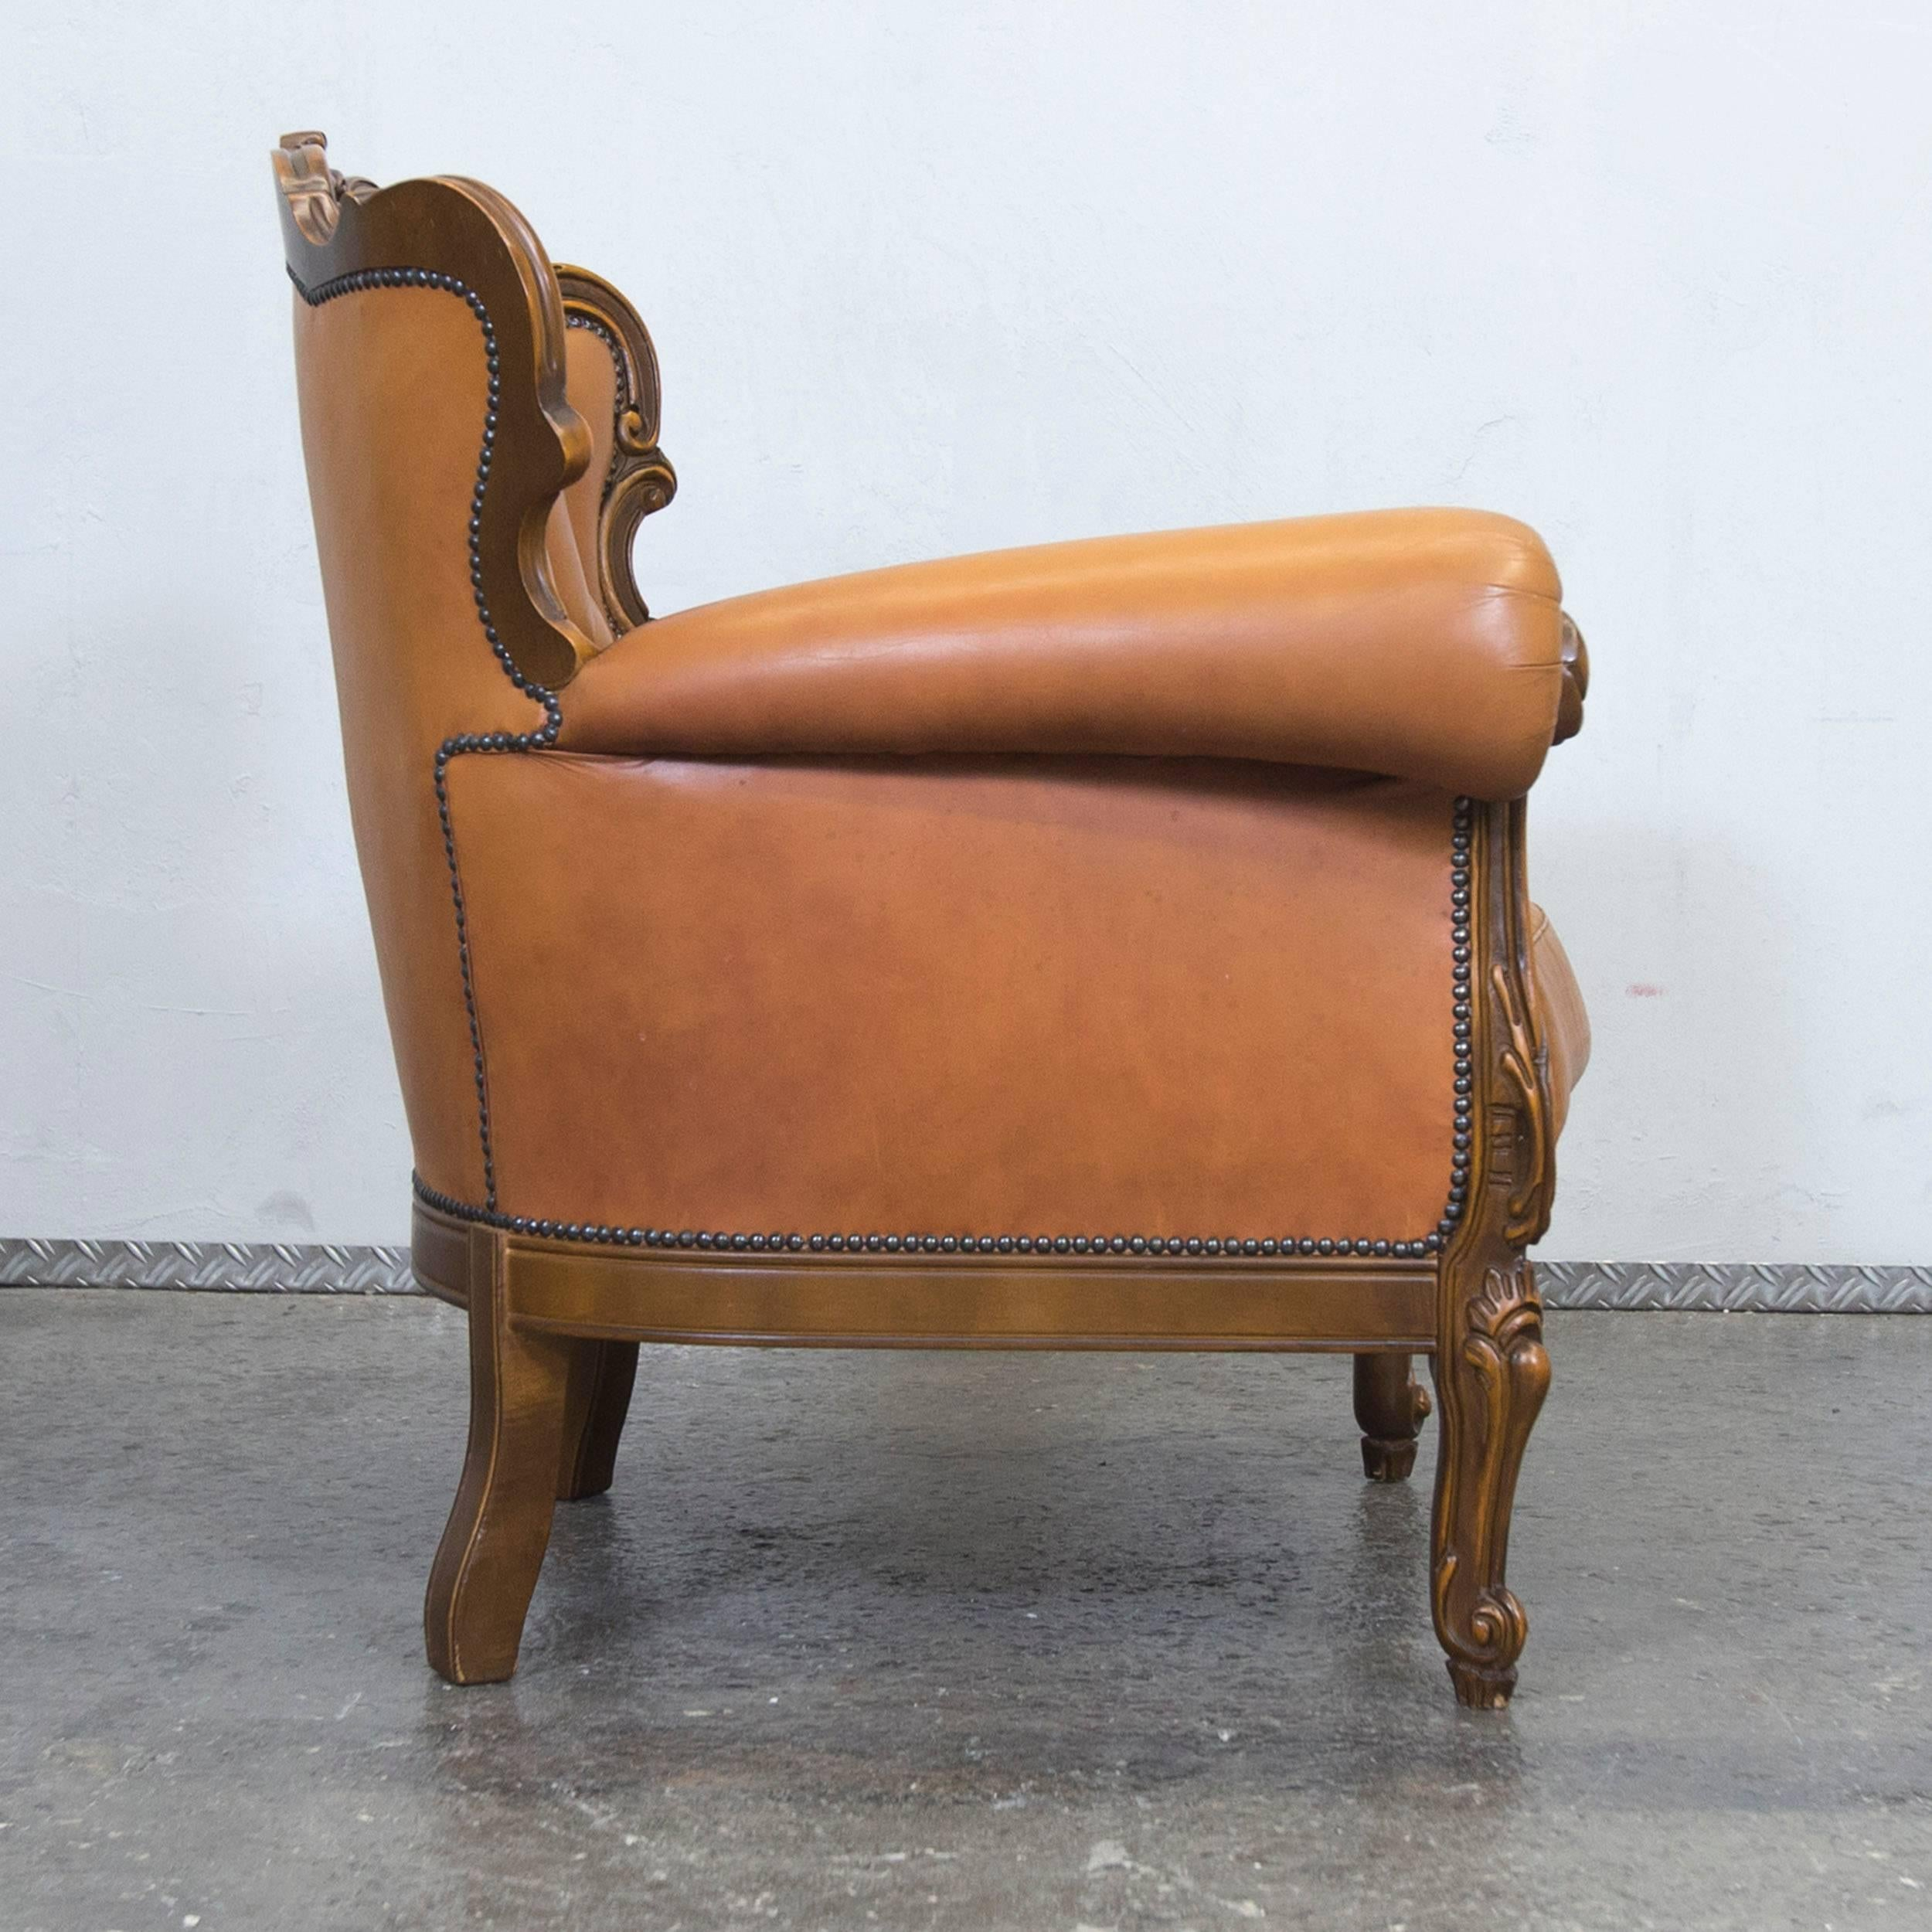 Bon 20th Century Chesterfield Baroque Leather Armchair Cognac Brown One Seat  Wood Retro Vintage For Sale